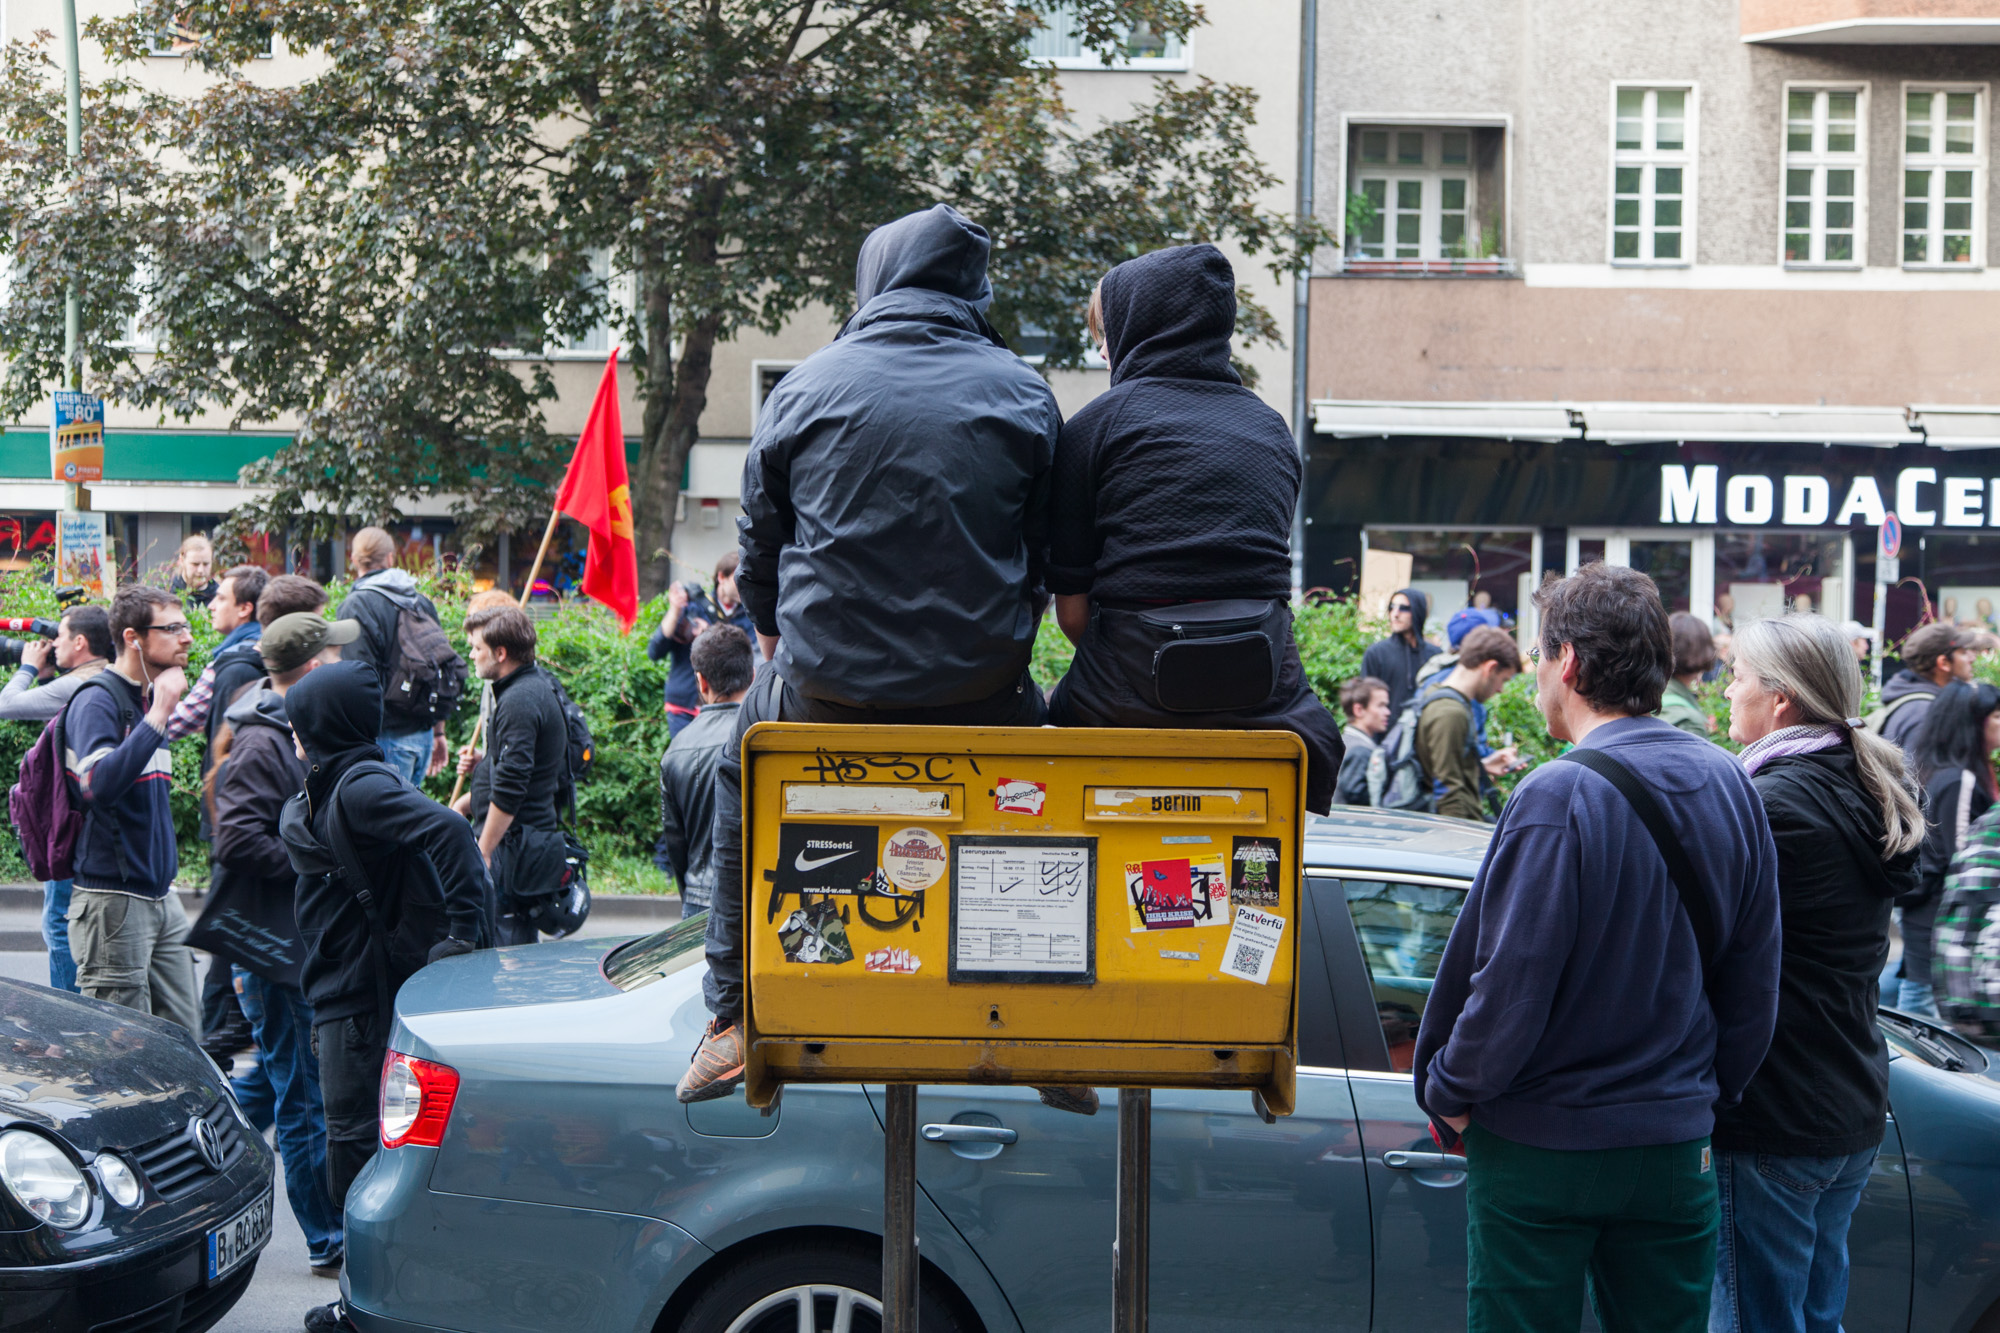 Revolutionäre 1.Mai Demo - Berlin Kreuzberg 2014